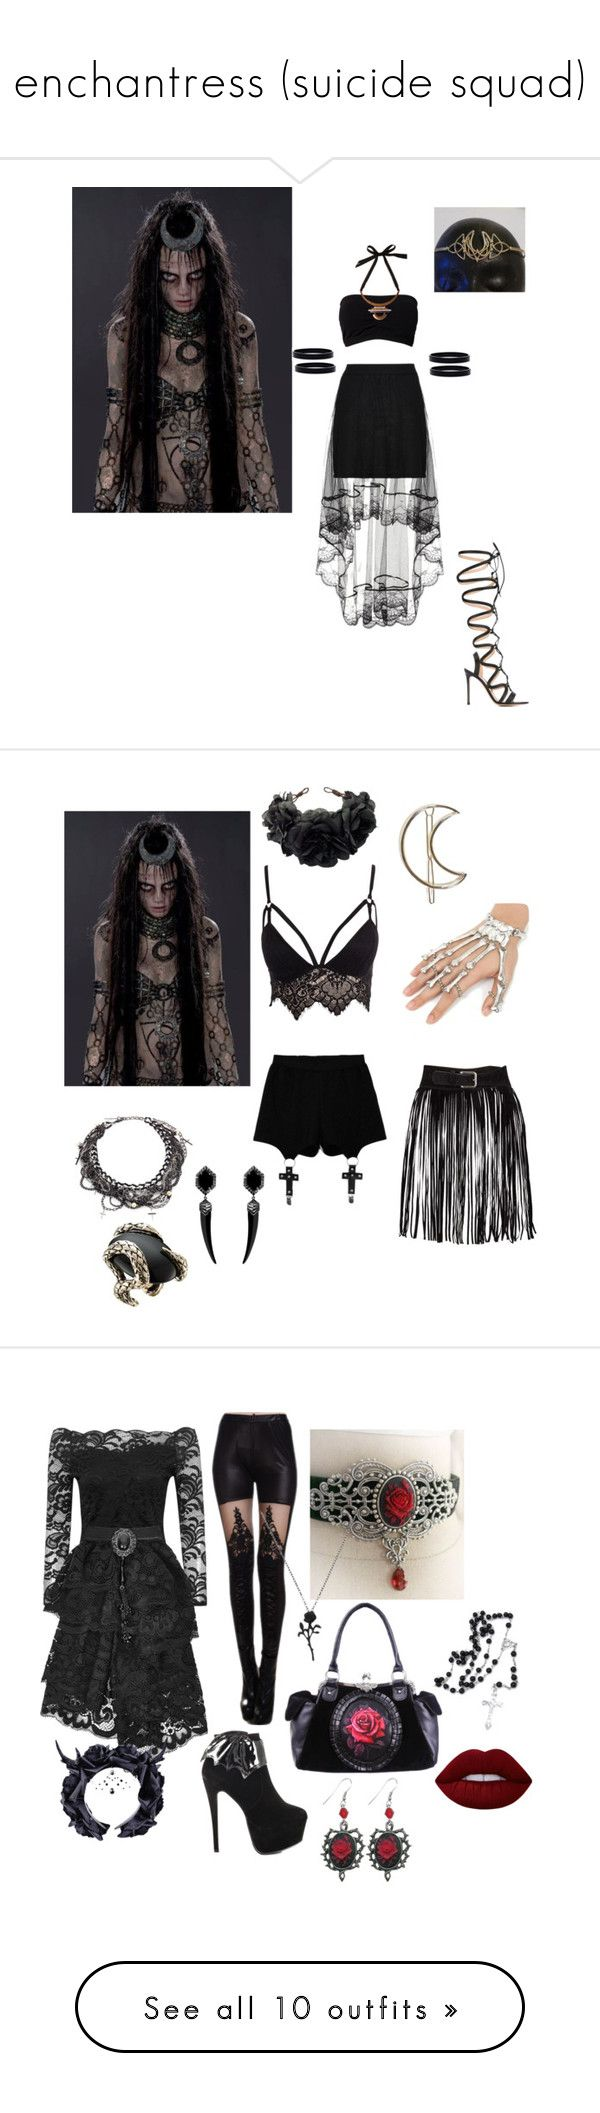 """enchantress (suicide squad)"" by bailey-frooyah ❤ liked on Polyvore featuring Wolf & Moon, Gianvito Rossi, L. Erickson, goth, alternative, Dccomics, Enchantress, SuicideSquad, Club L and Chicnova Fashion"